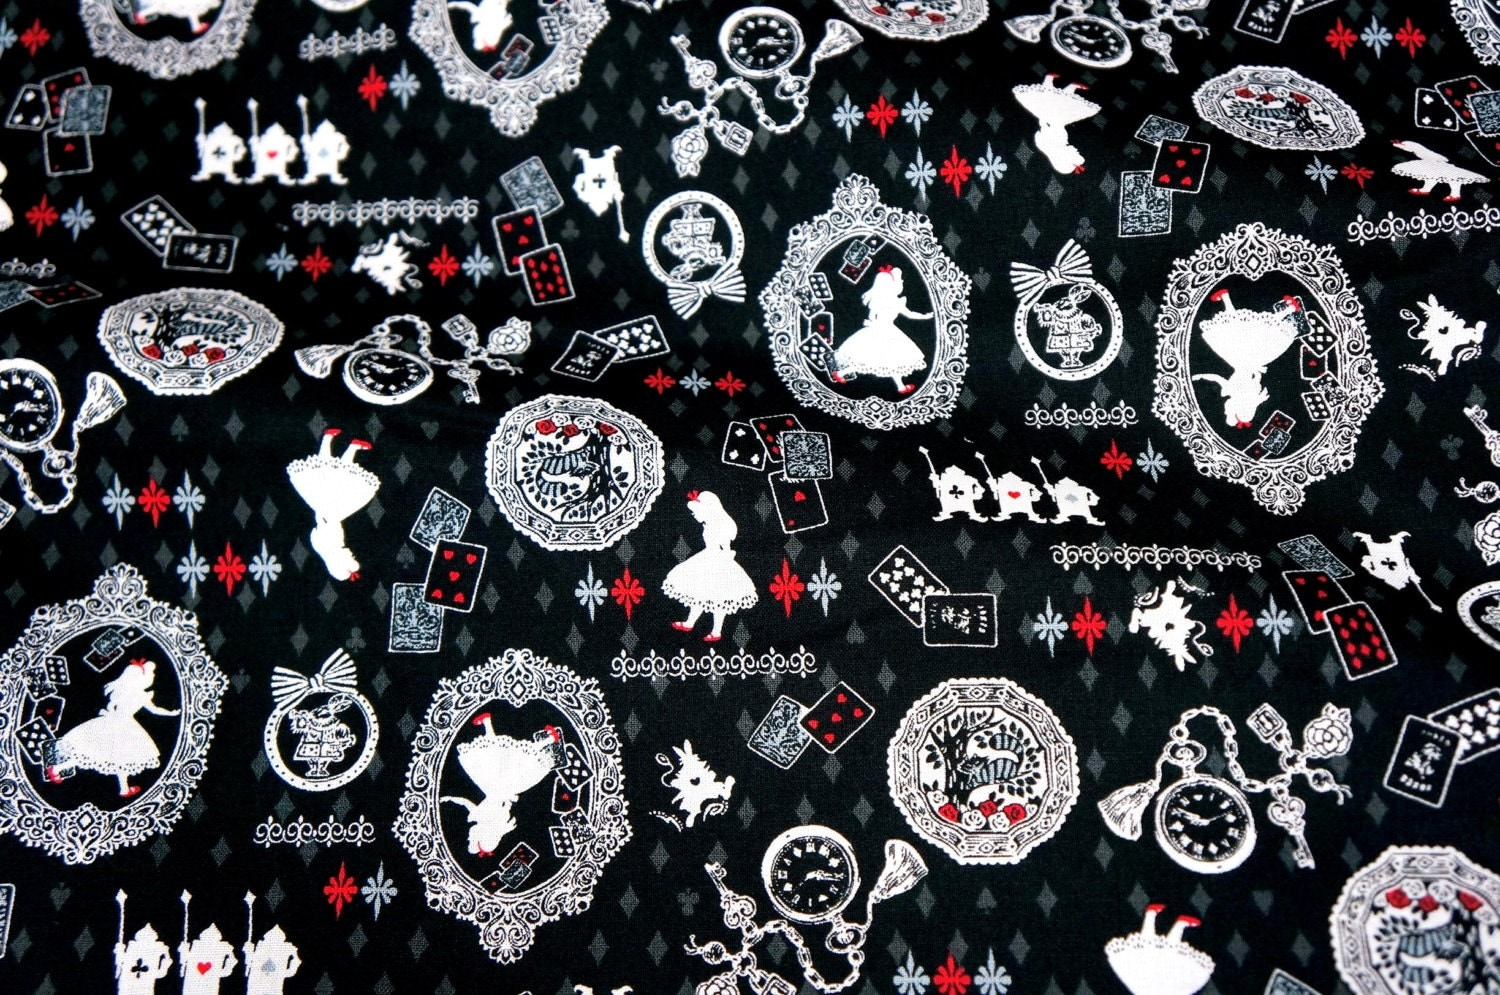 Alice in Wonderland Fabric by beautifulwork on Etsy - photo#21